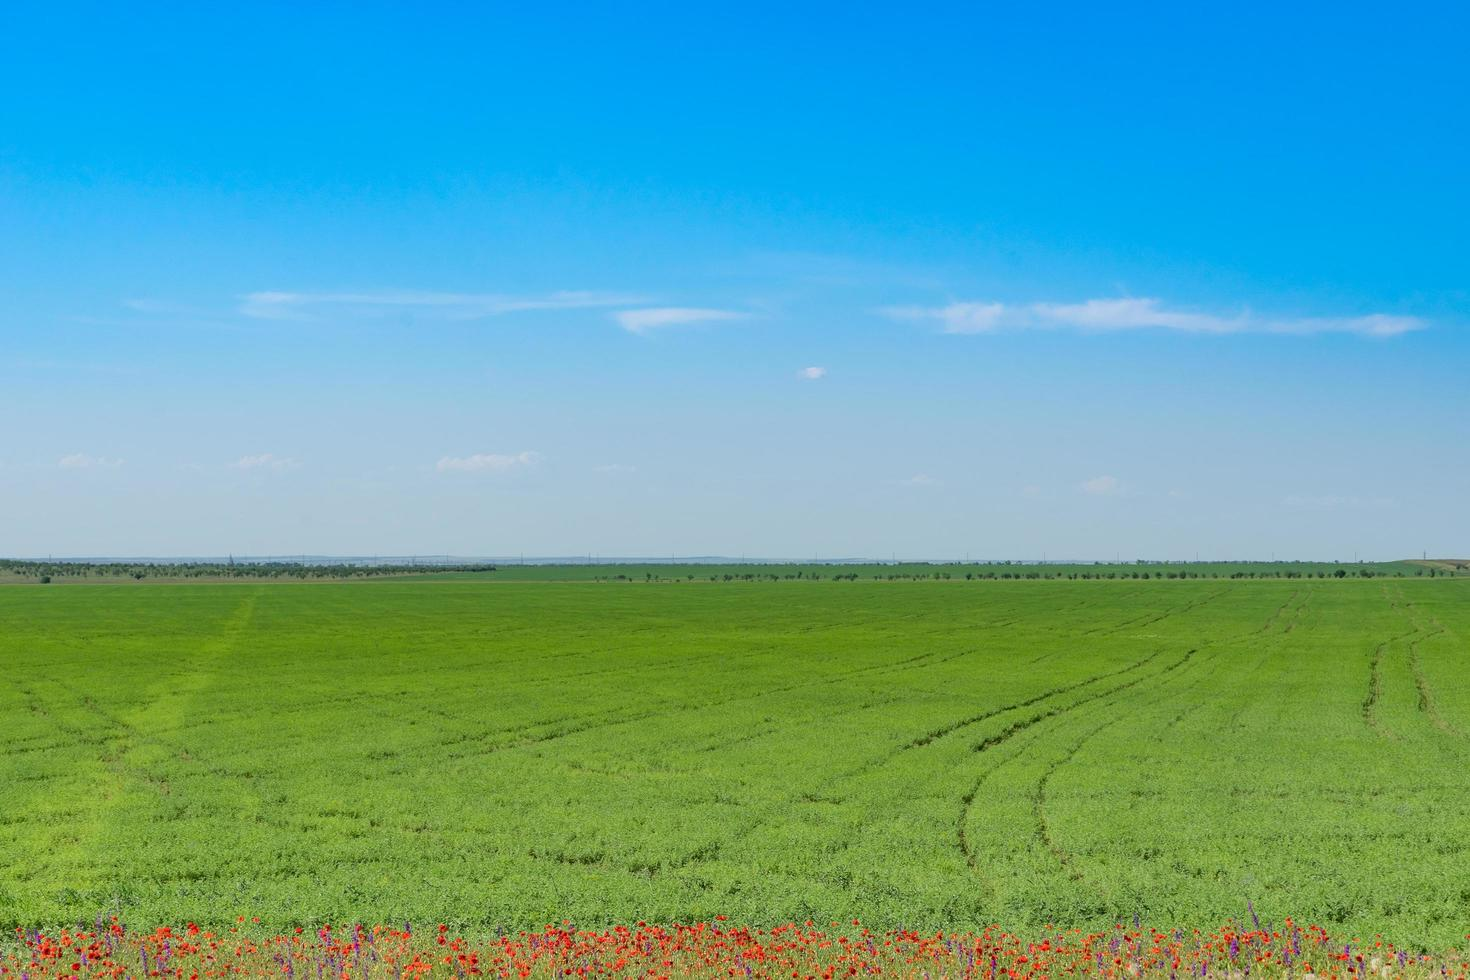 Natural landscape with green field, red poppies on the edge and blue sky. photo